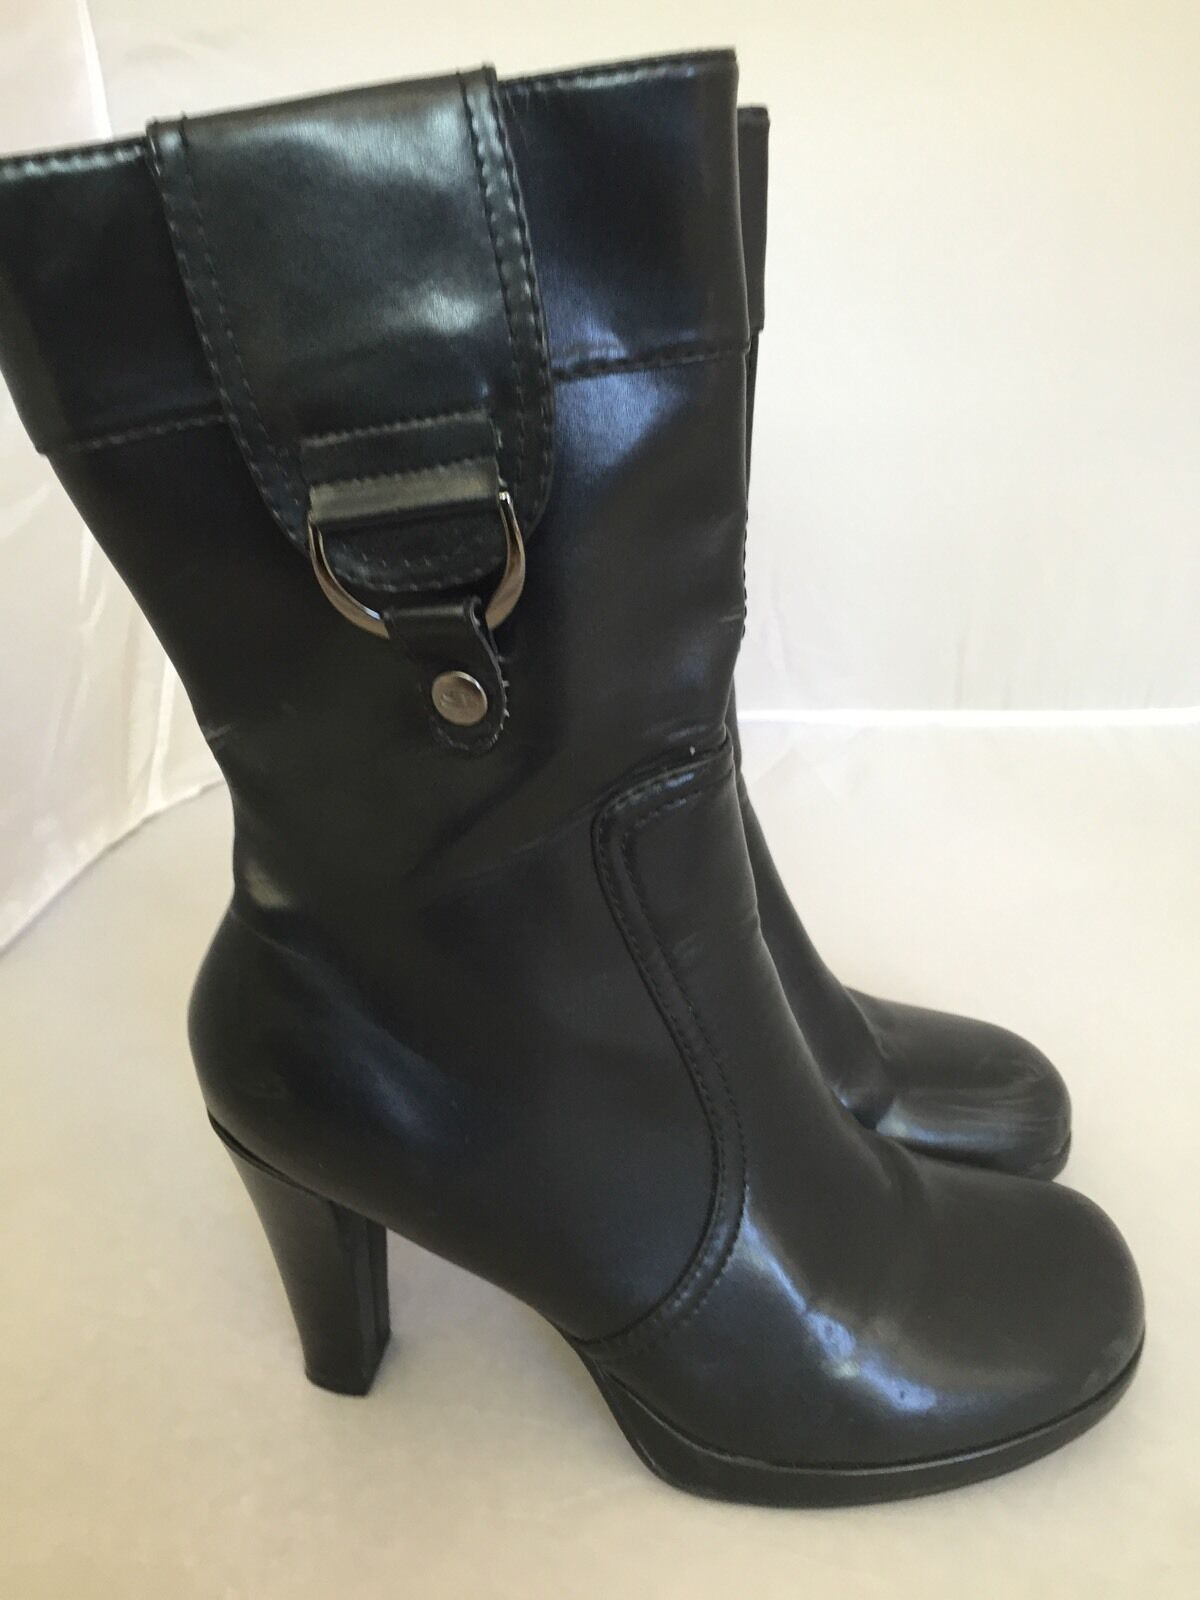 Skechers Size 9.5 M Calf High Boots Black Synthetic Upper Somethin' Else